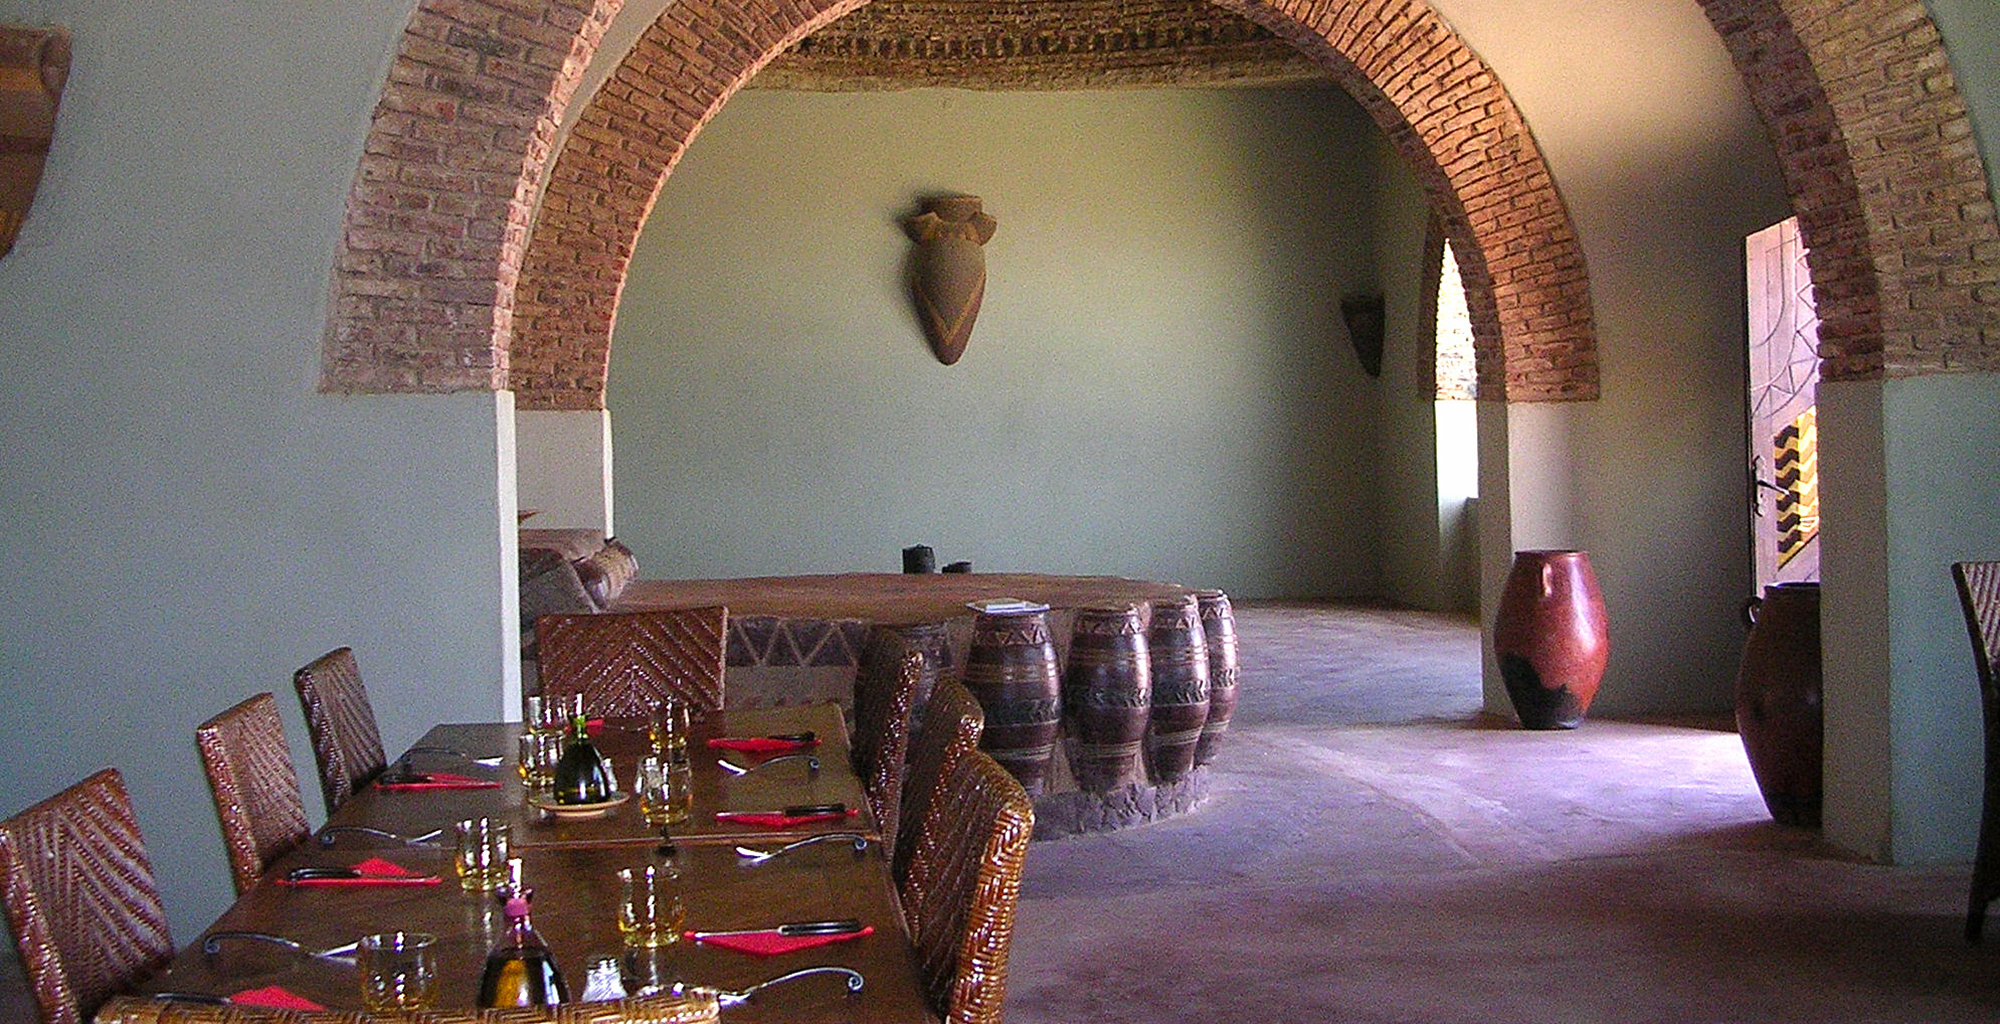 Sudan-Nubian-Rest-House-Dining